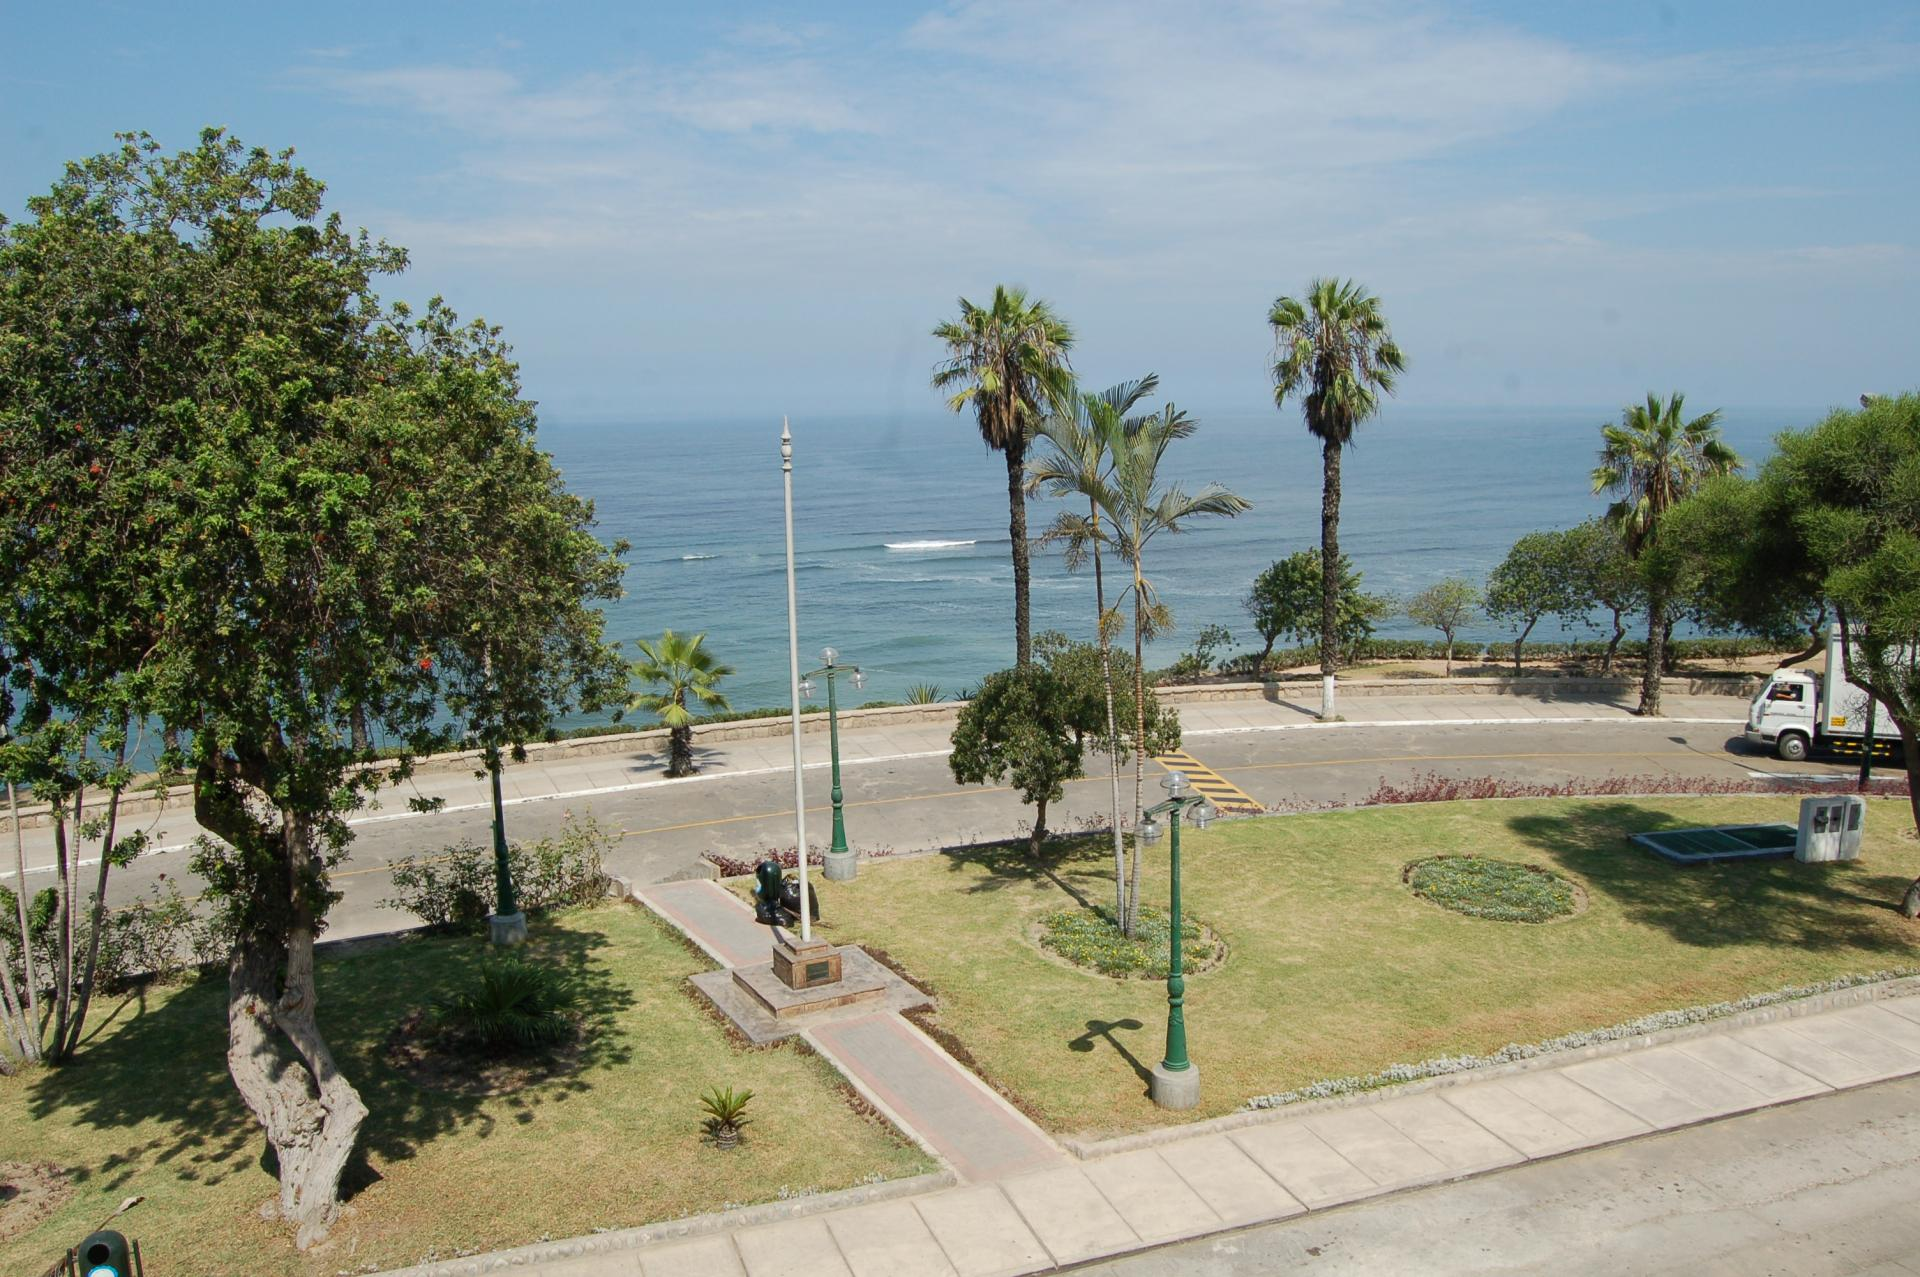 LIMA, BARRANCO, MALECON SOUZA, 3 BDRM APARTMENT FOR SALE